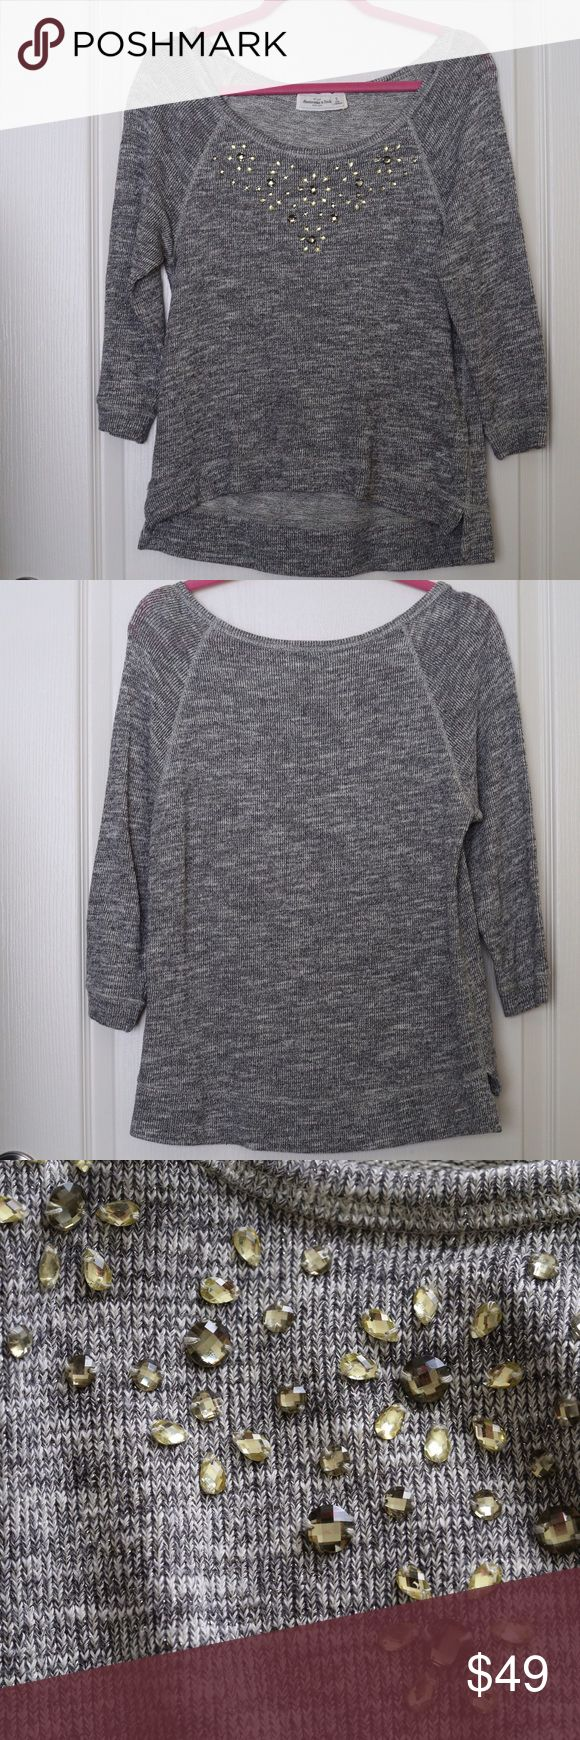 Abercrombie&fitch embellished Sweater Size S Abercrombie&fitch embellished Sweater Size S Abercrombie & Fitch Sweaters